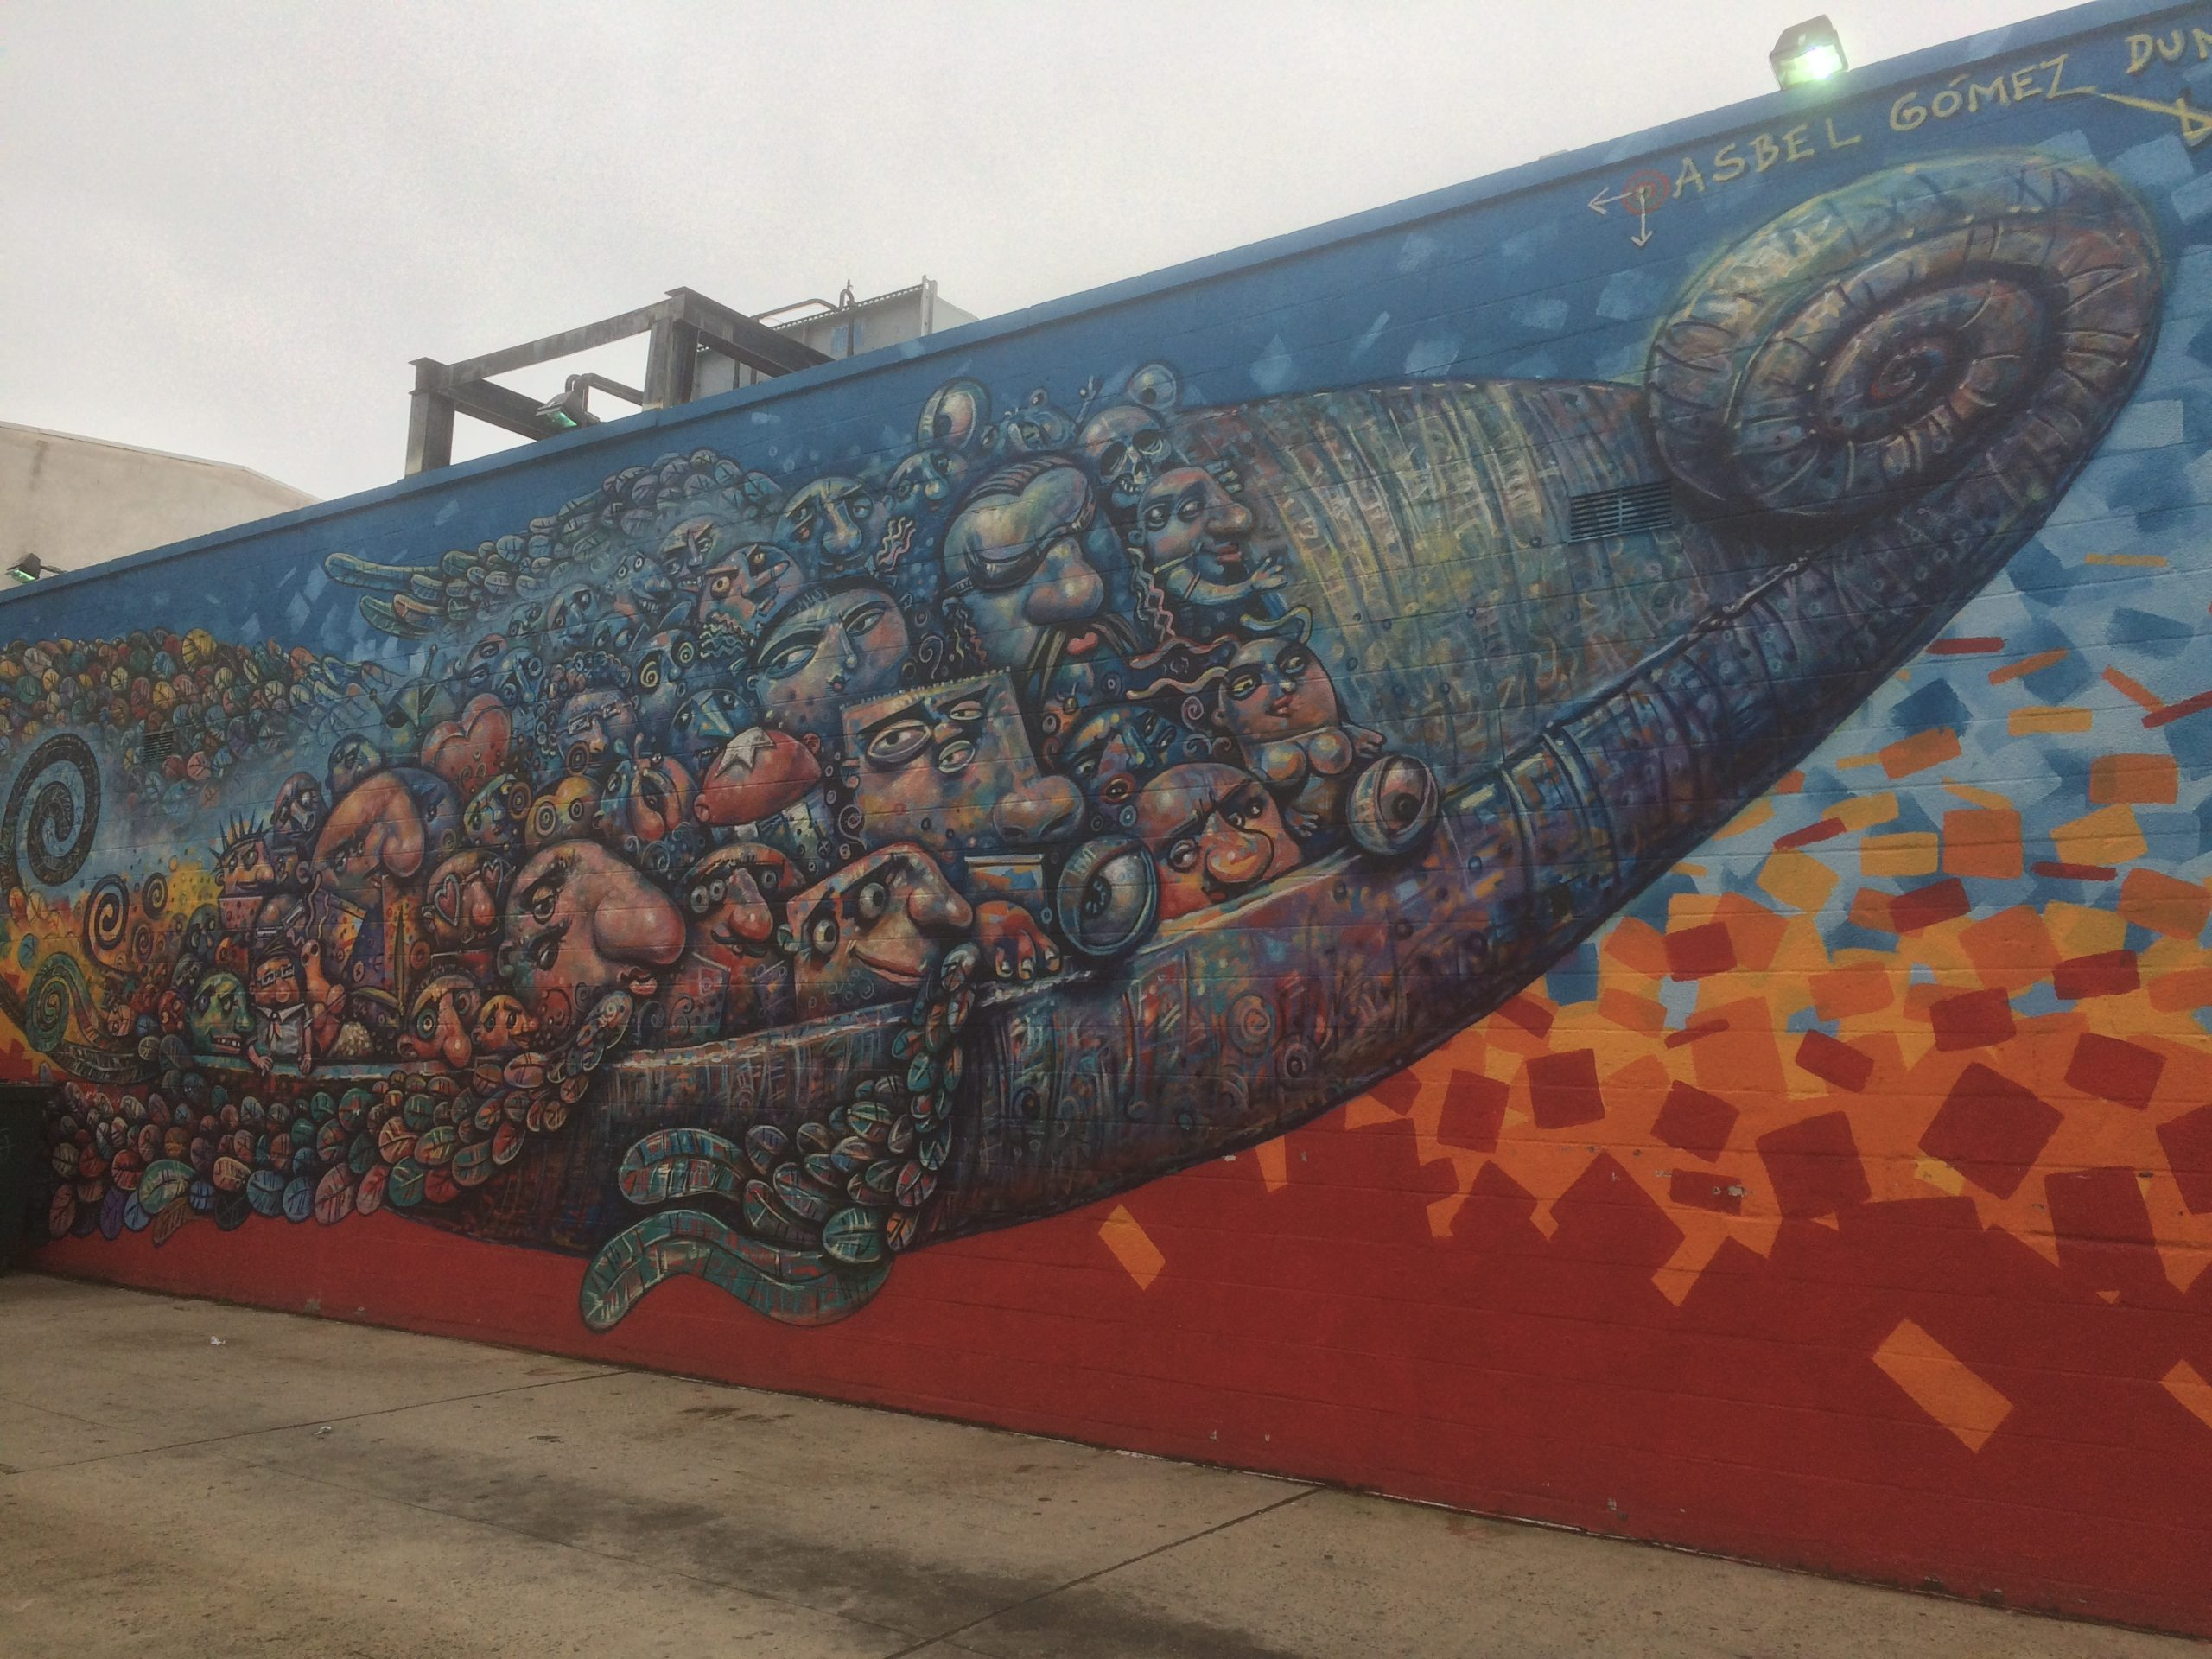 Colorful graffiti mural in Jersey City